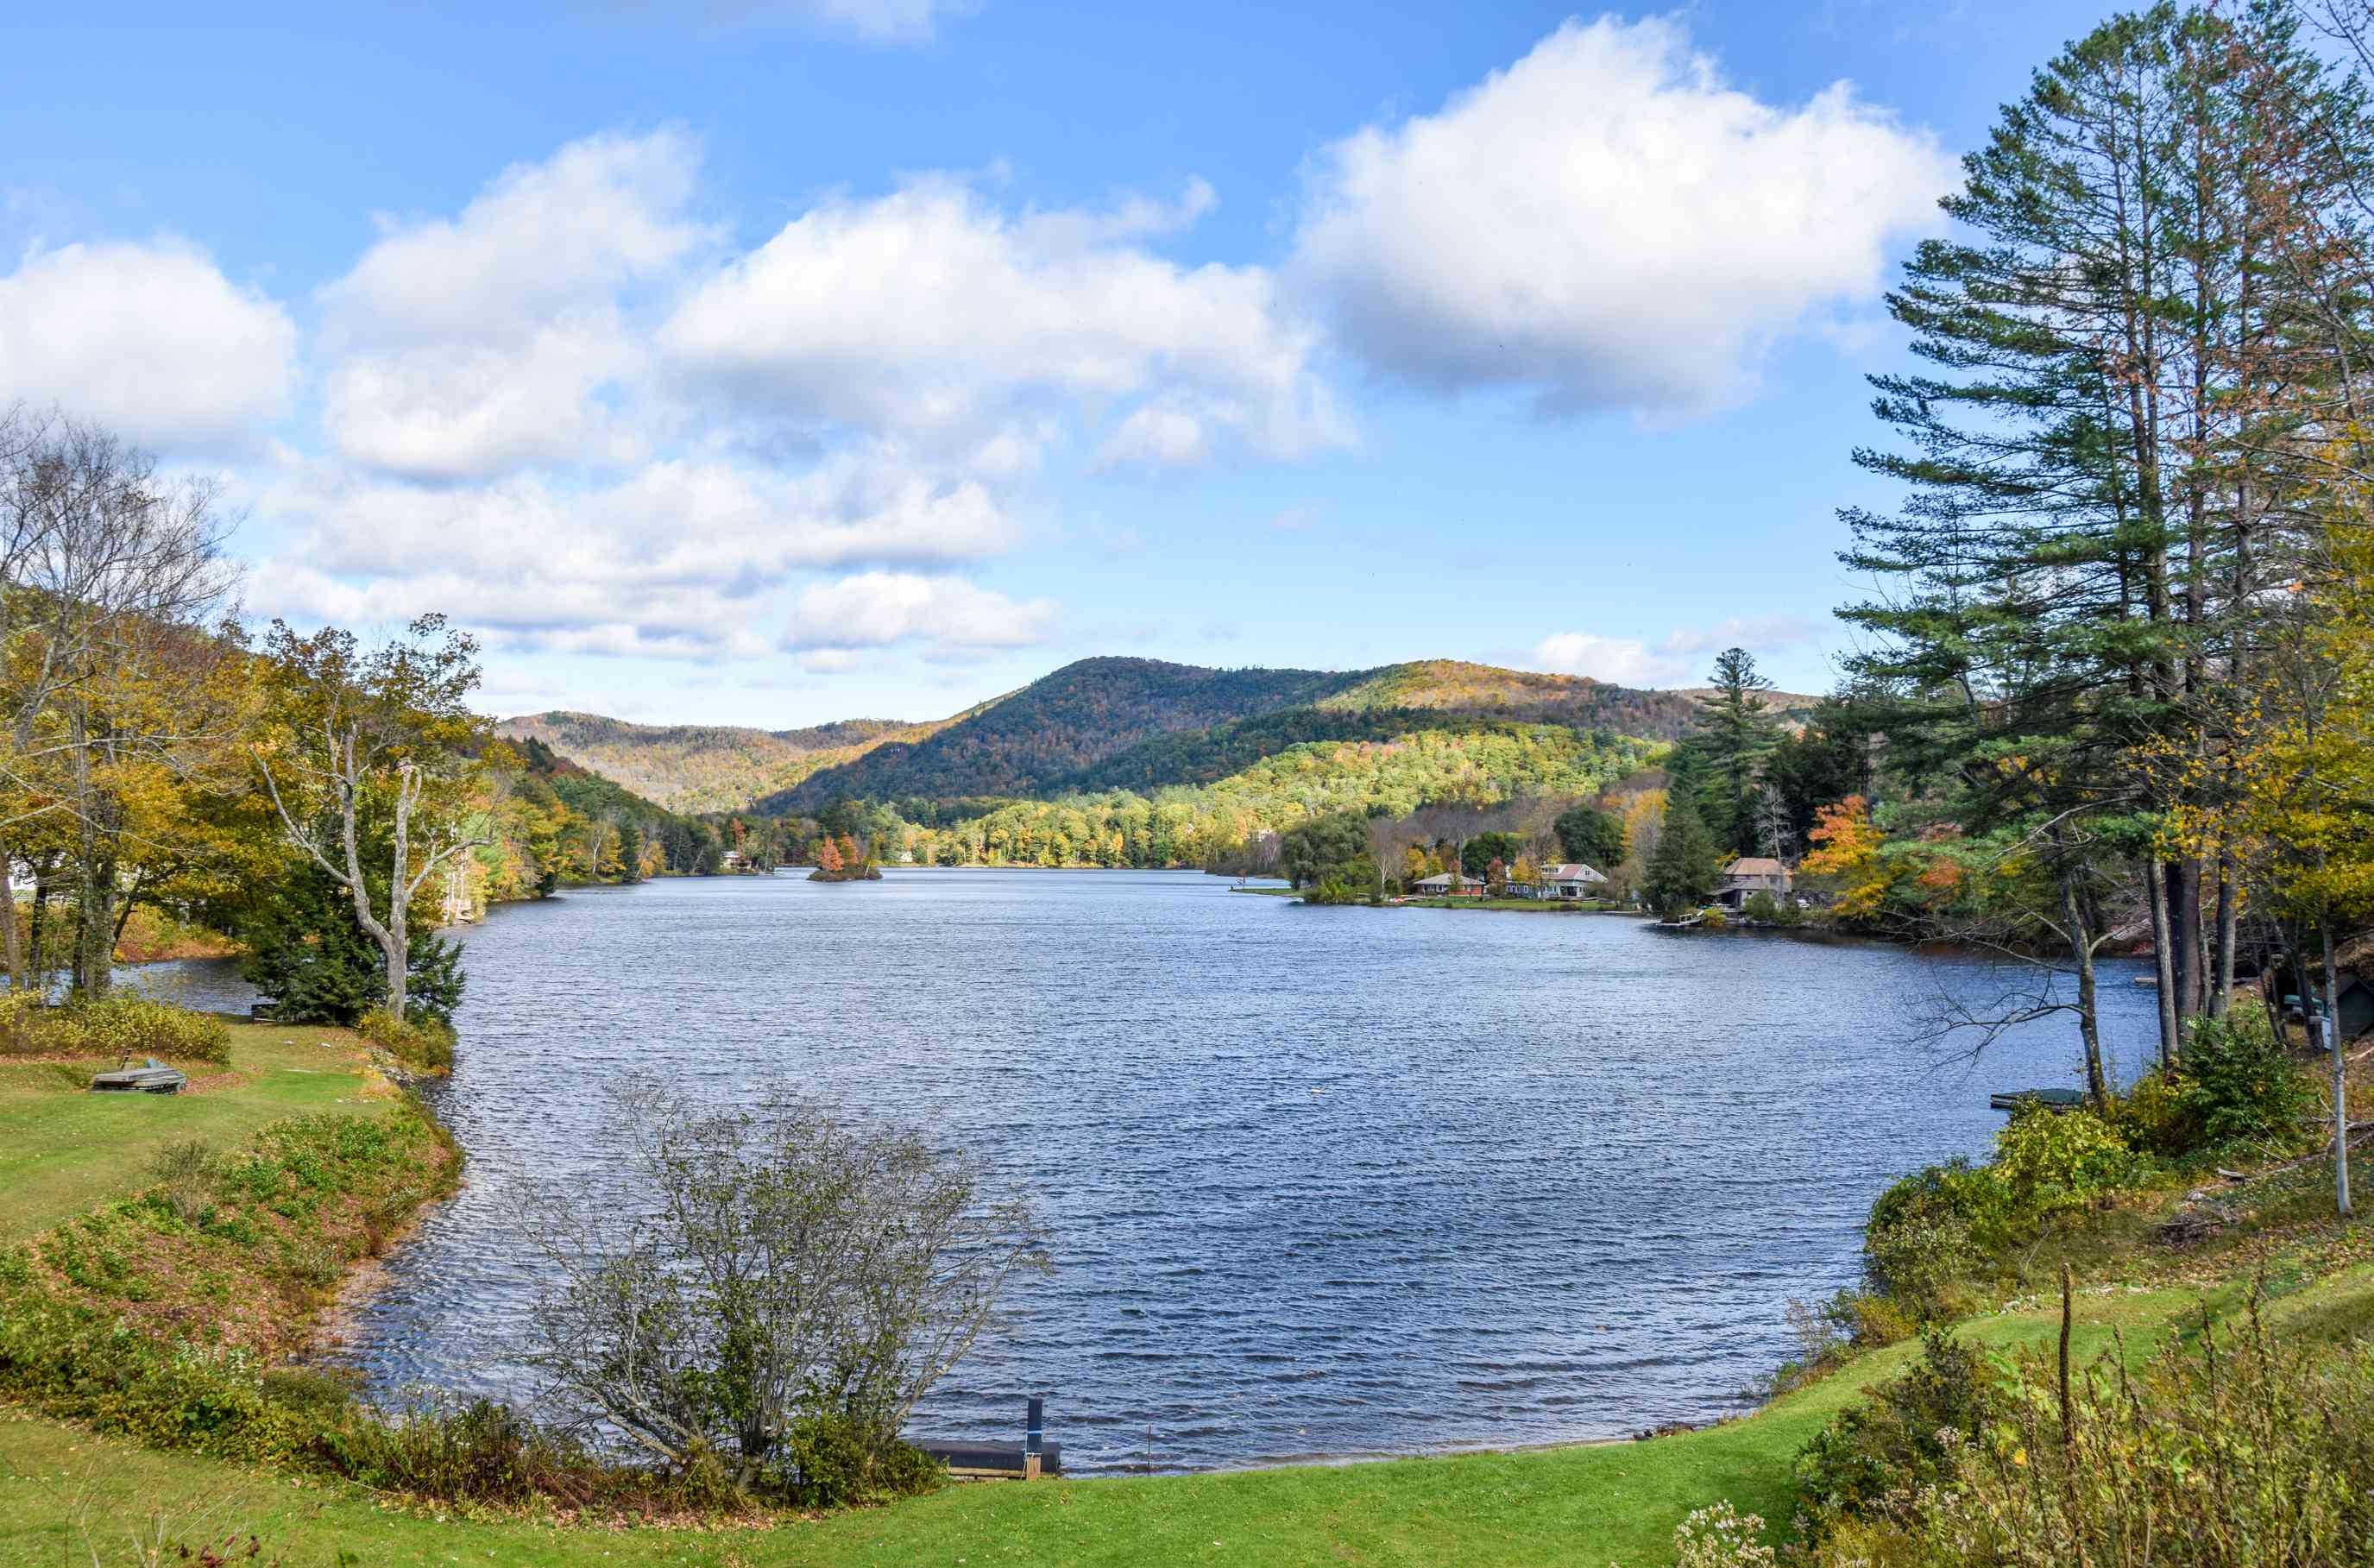 Fall foliage around a lake in Vermont